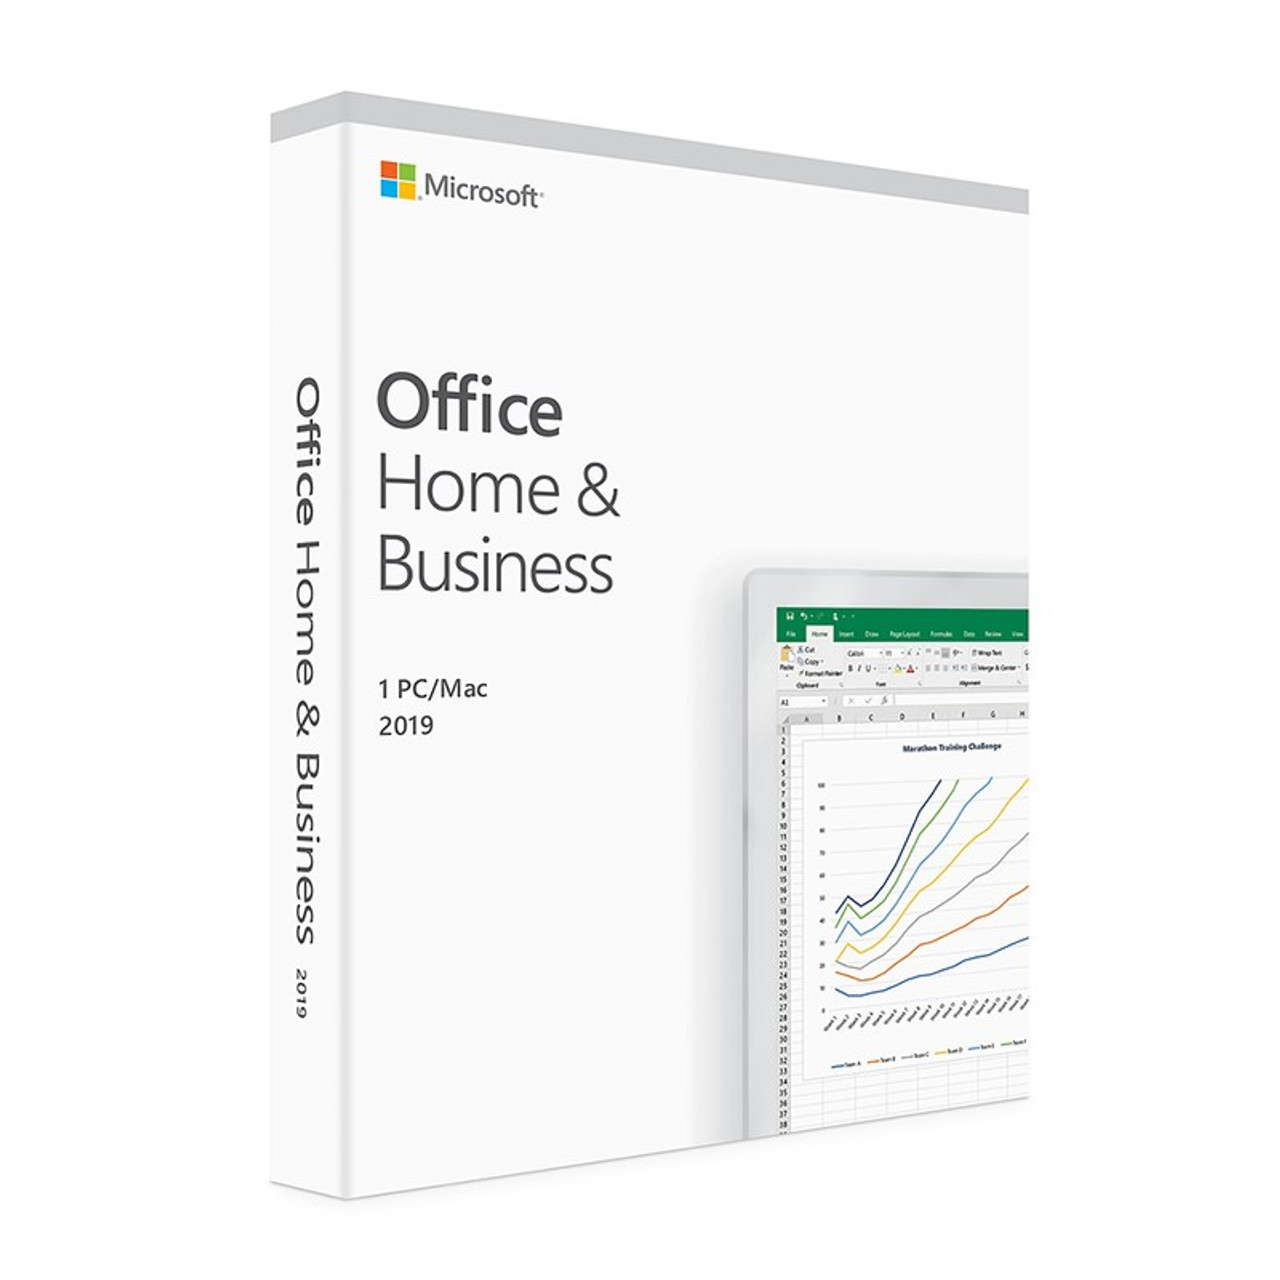 Product image for Microsoft Office 365 2019 Home and Business - Digital Download   CX Computer Superstore